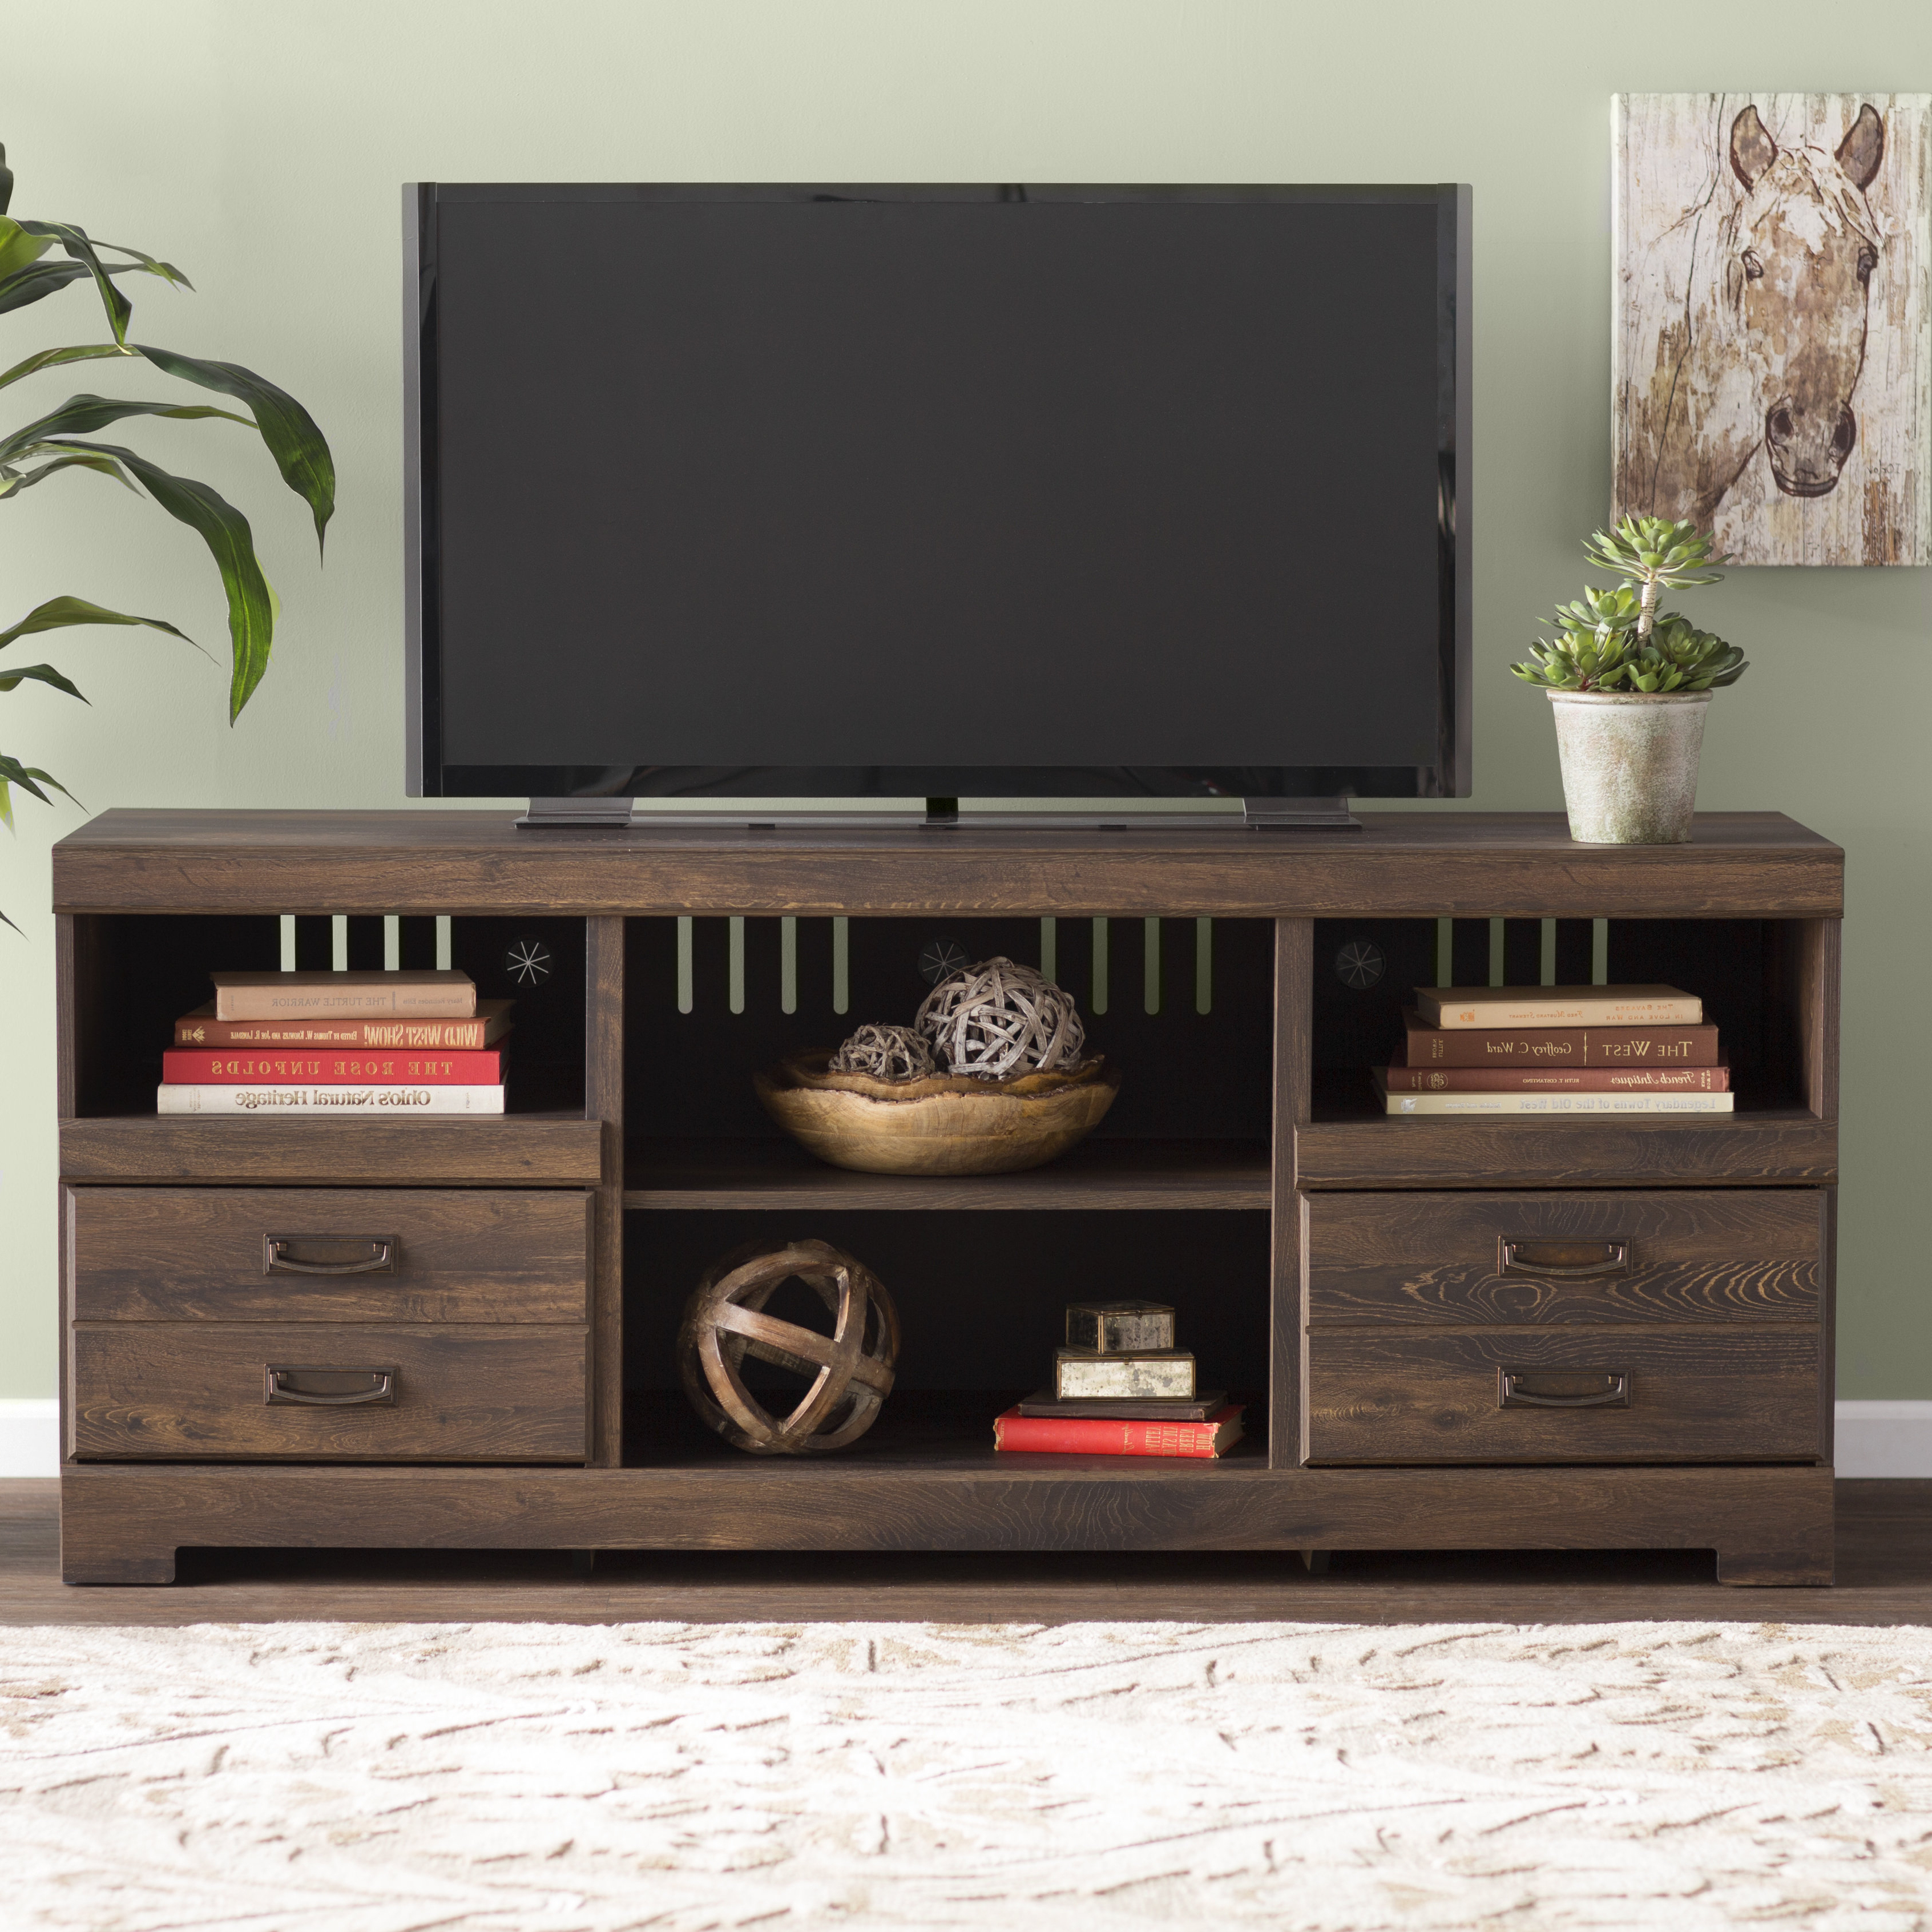 Enclosed Tv Cabinets With Doors Regarding Most Up To Date Tv Cabinet With Doors That Enclose Small Enclosed Modern Fully (View 8 of 20)